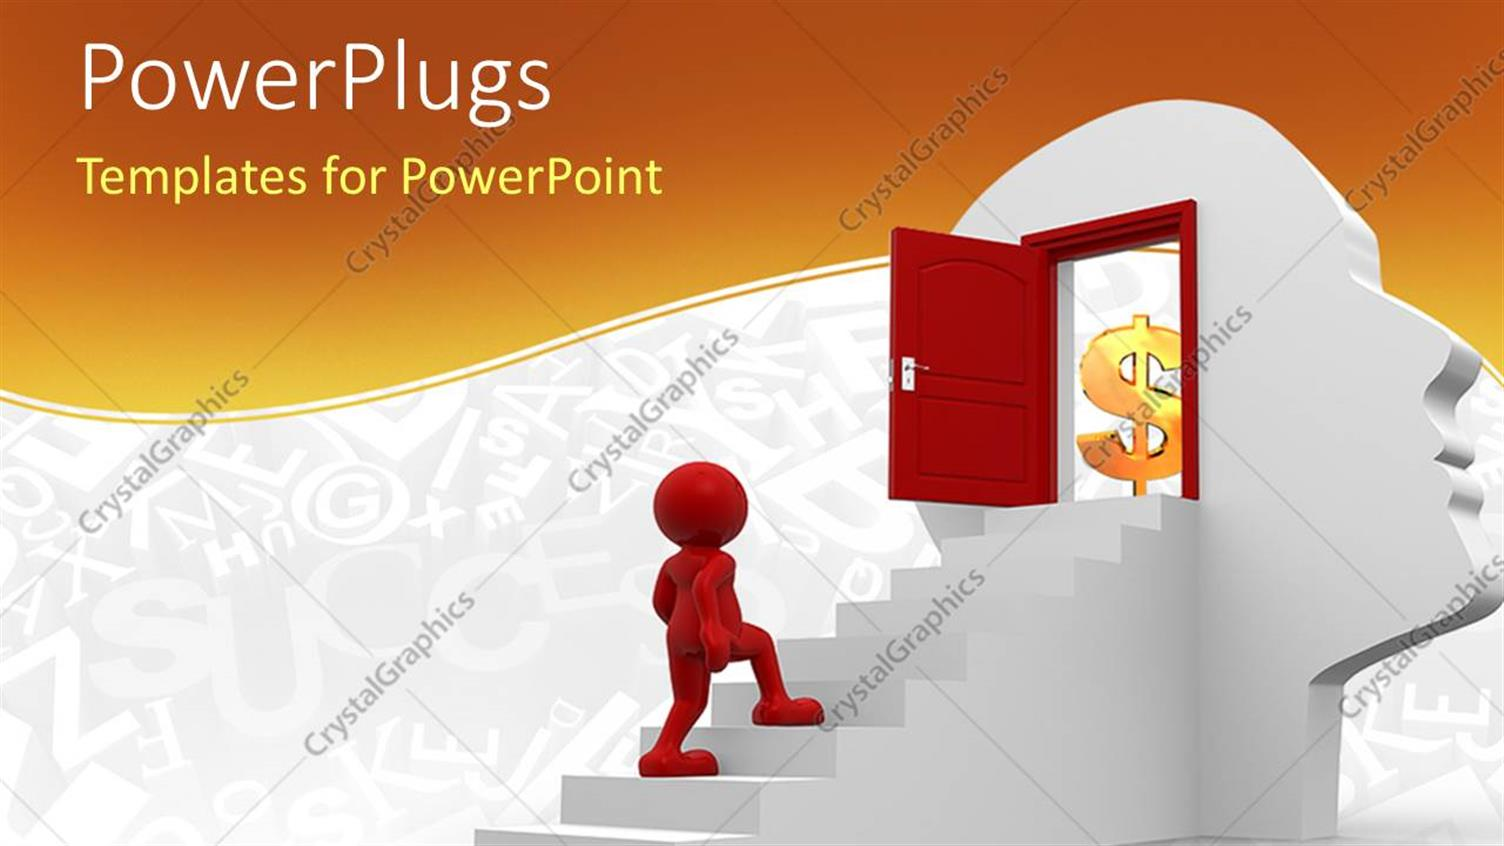 PowerPoint Template Displaying Red Character Climbing White Steps into Red Door on Human Head Figure